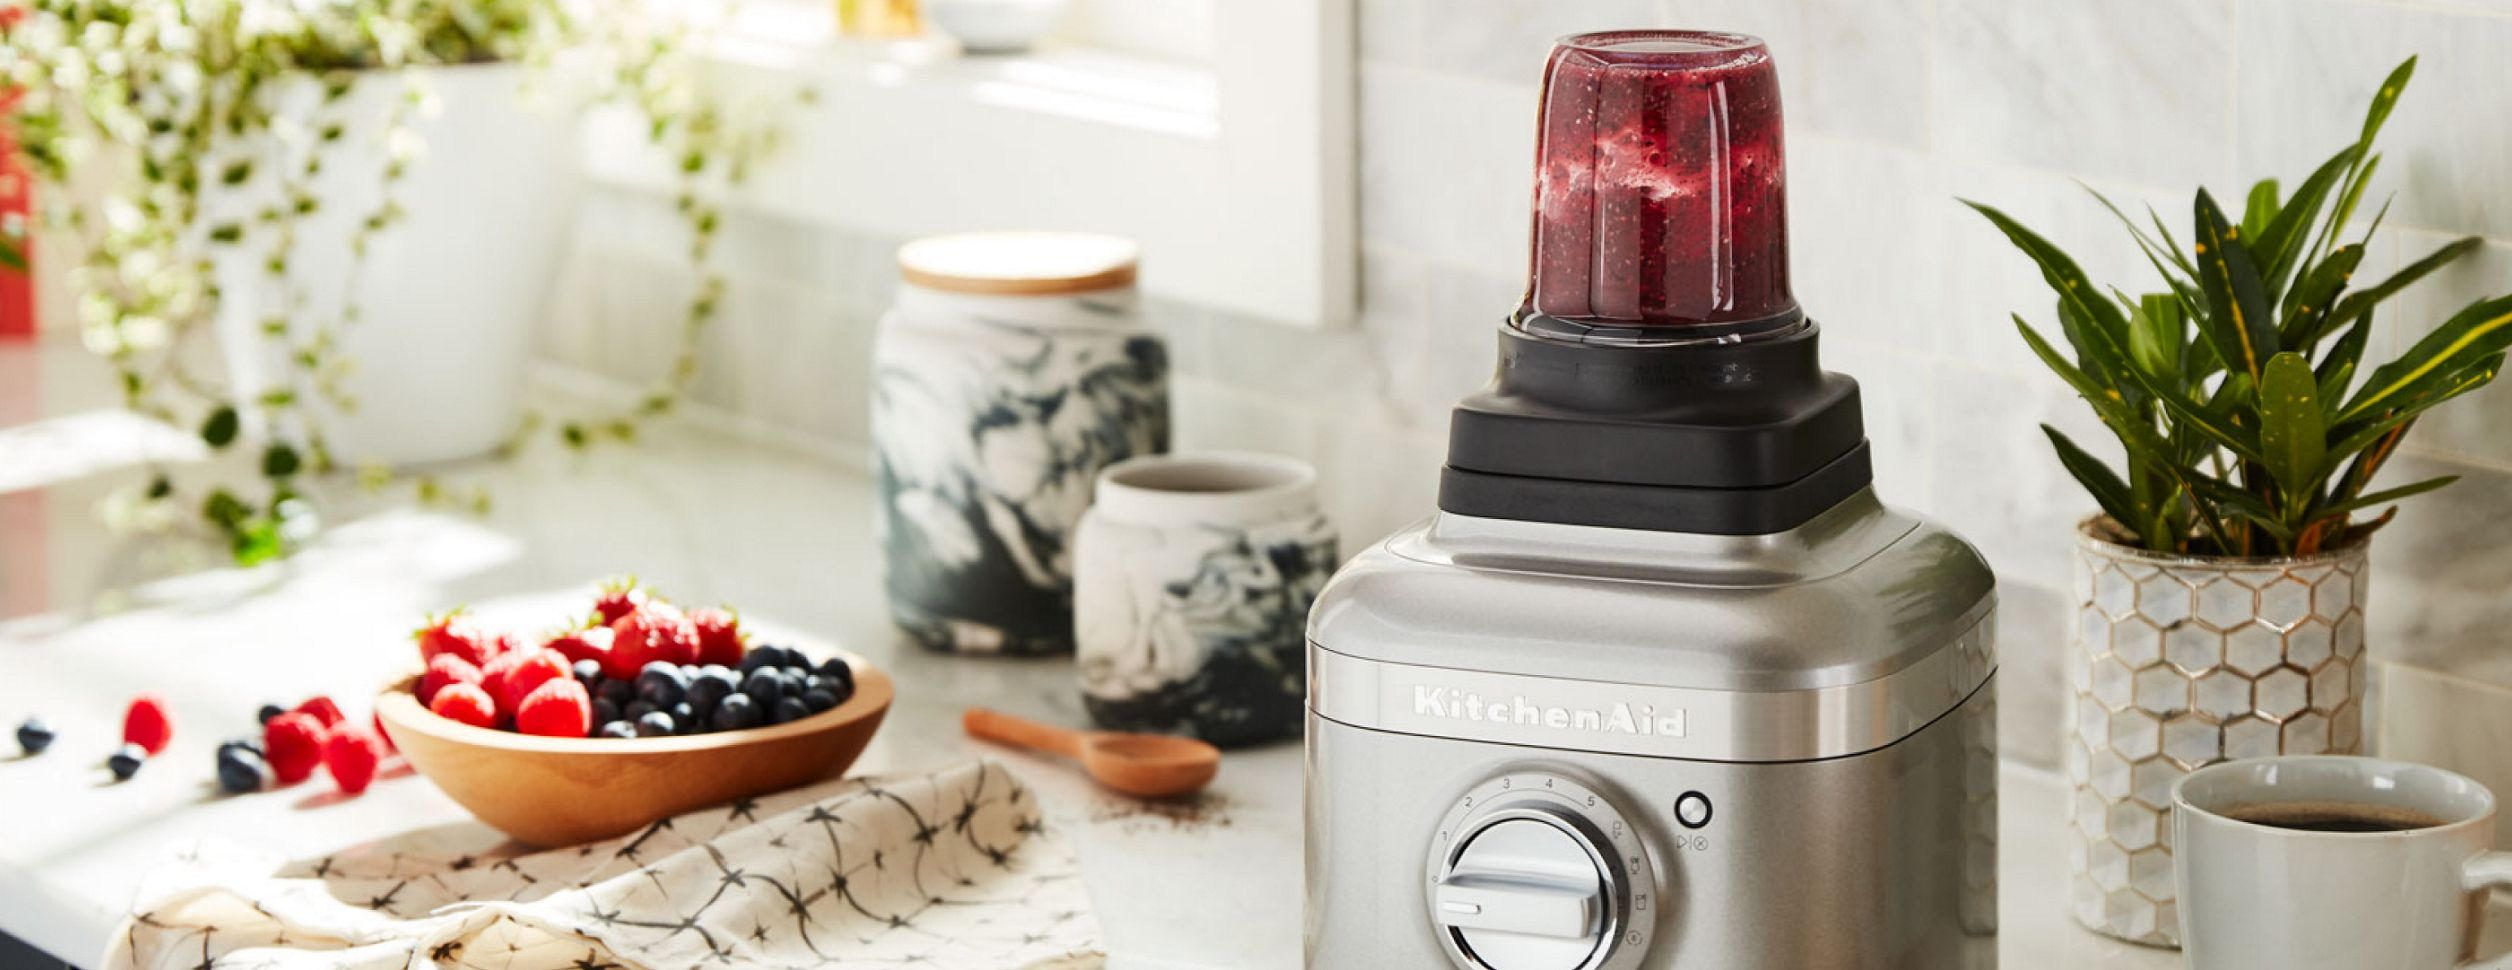 A KitchenAid food processor, loaded with a variety of colorful vegetables. All around it are the signs of preparation, with cut and uncut ingredients in various states of preparation.